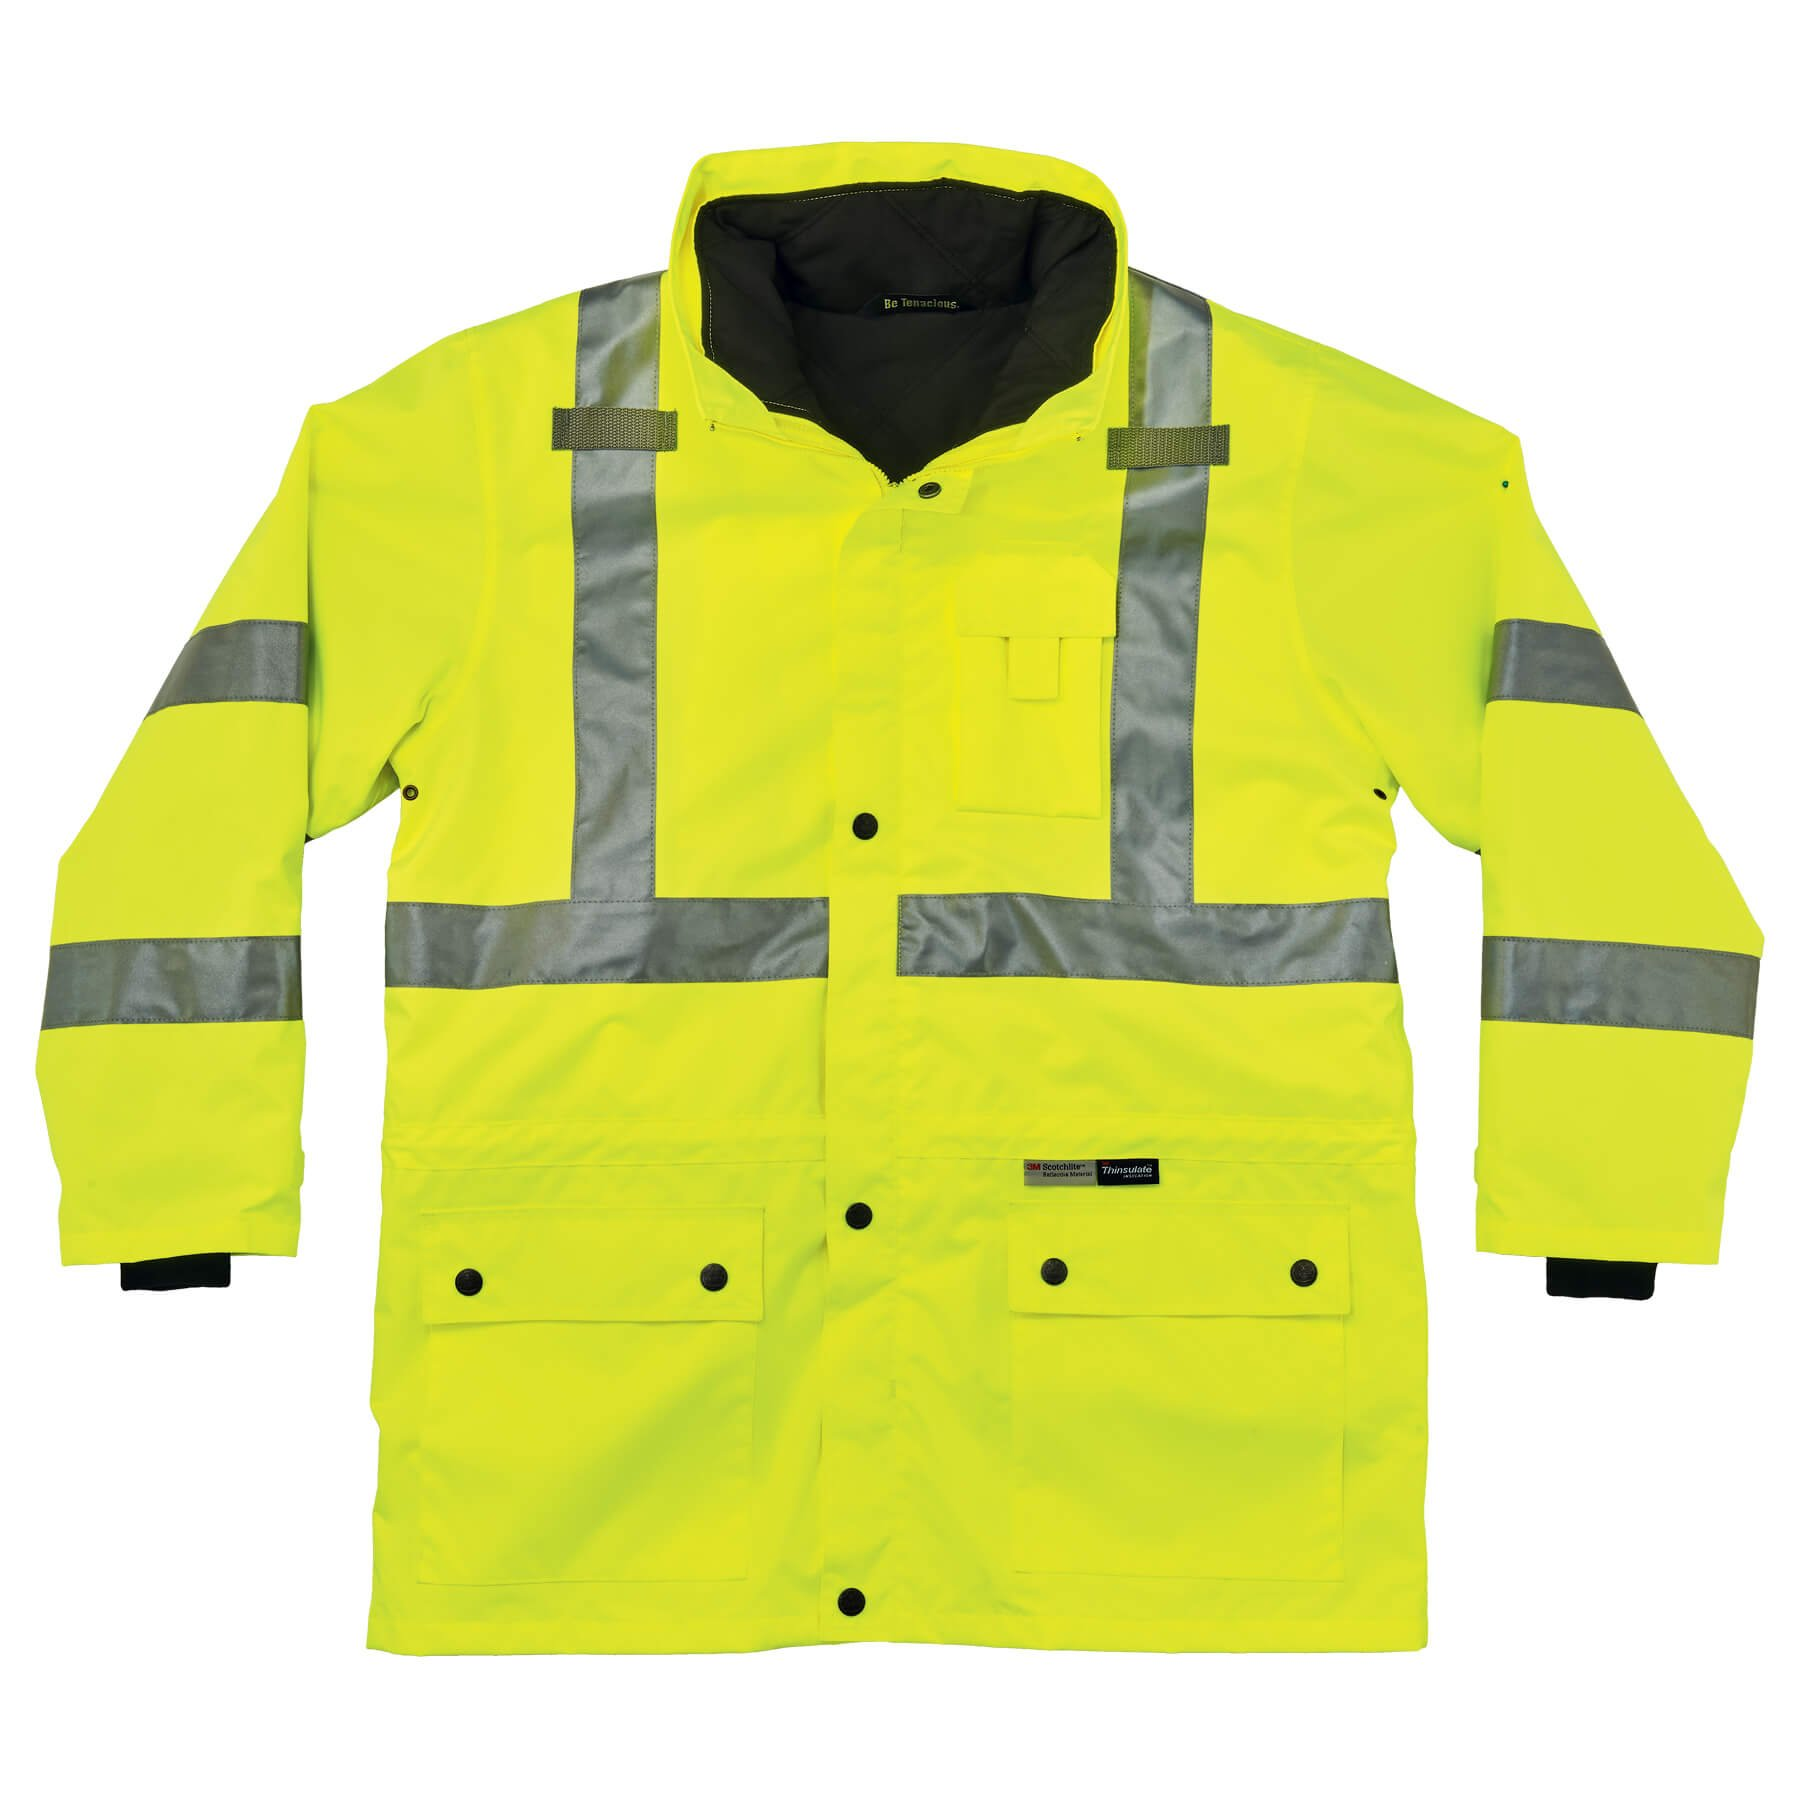 GloWear 8385 ANSI High Visibility 4-in-1 Reflective Safety Jacket, Lime, 3XL by Ergodyne